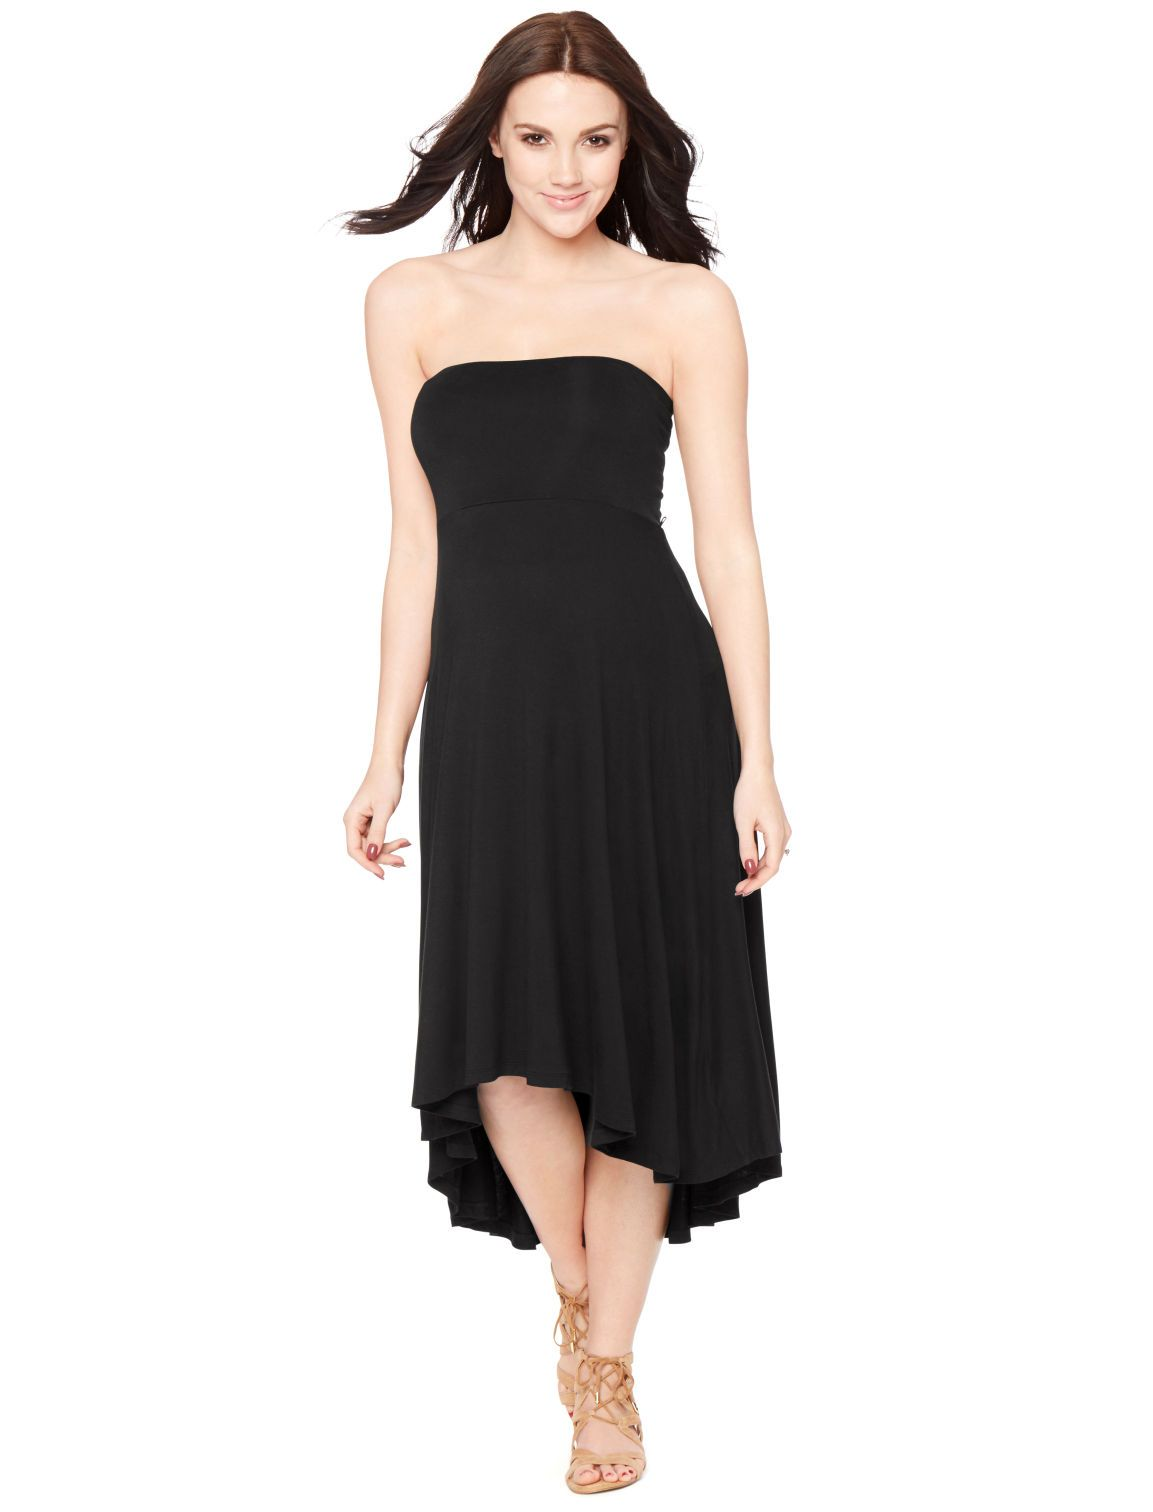 cba2667ef5 Motherhood Maternity Strapless High-low Hem Maternity Dress